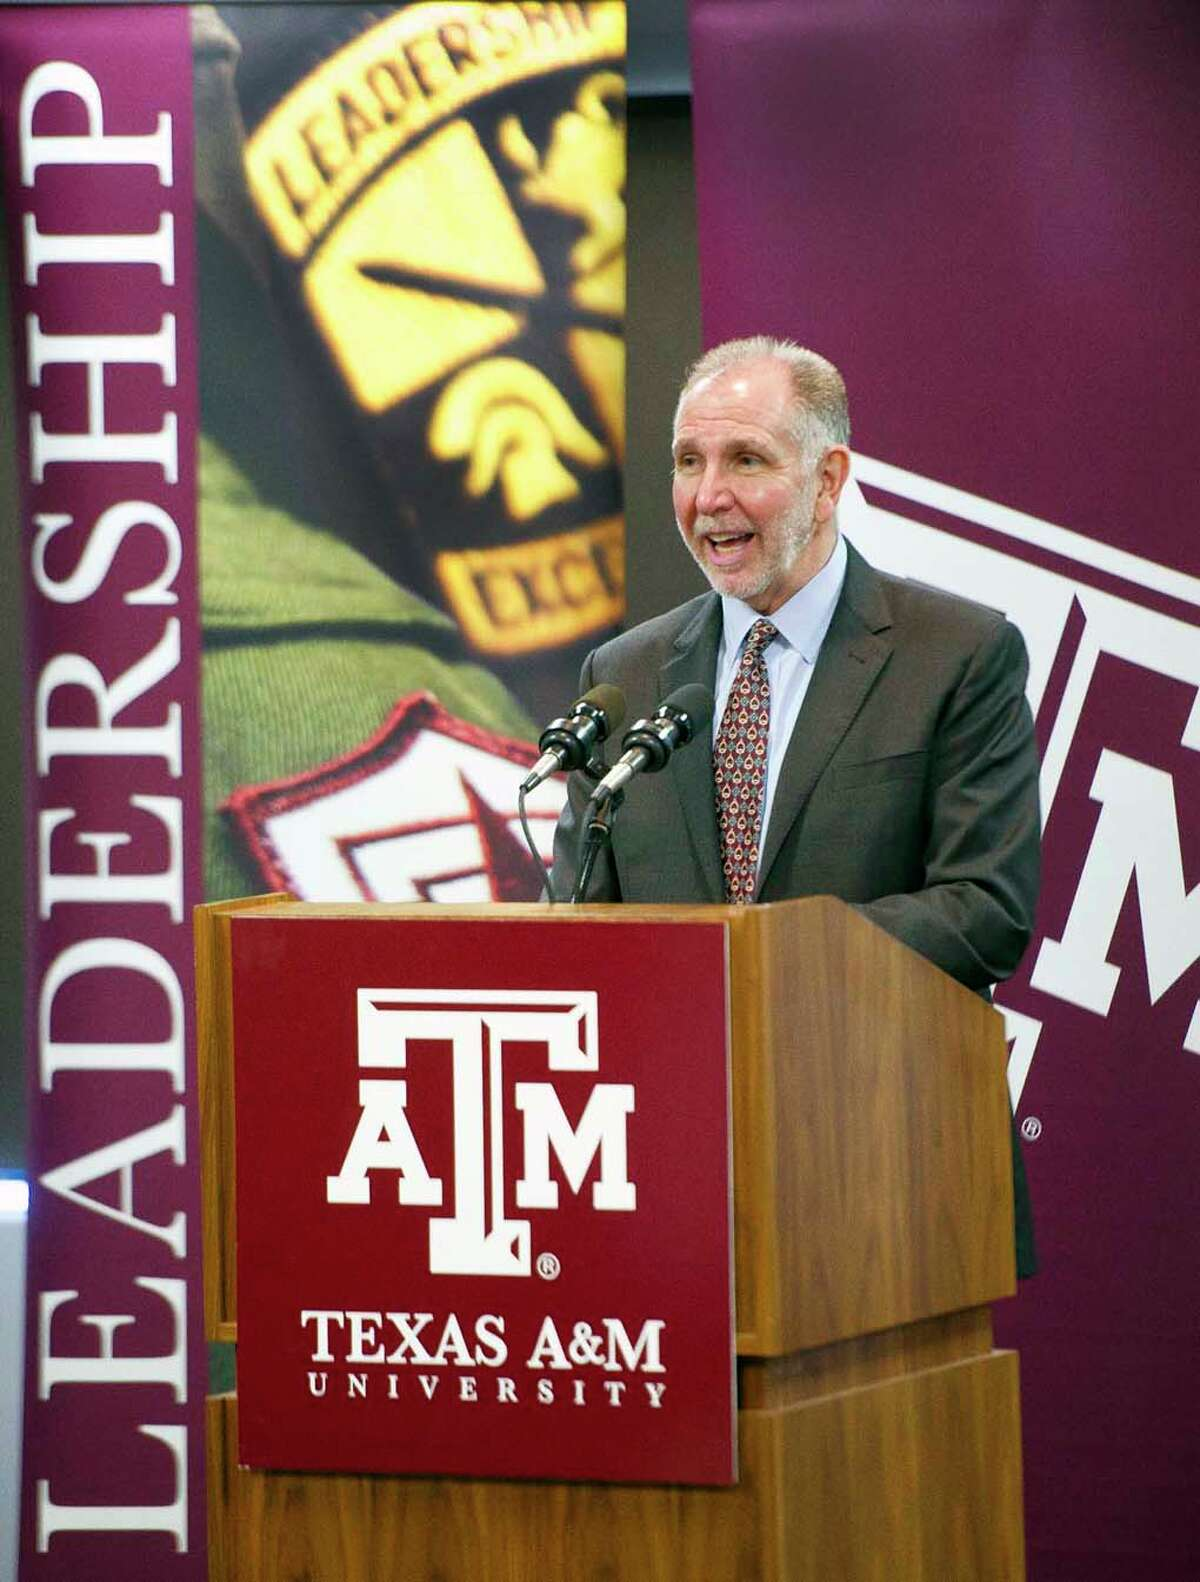 Texas A&M University President Michael Young on Thursday announced the campus aims to raise $4 billion by 2020.